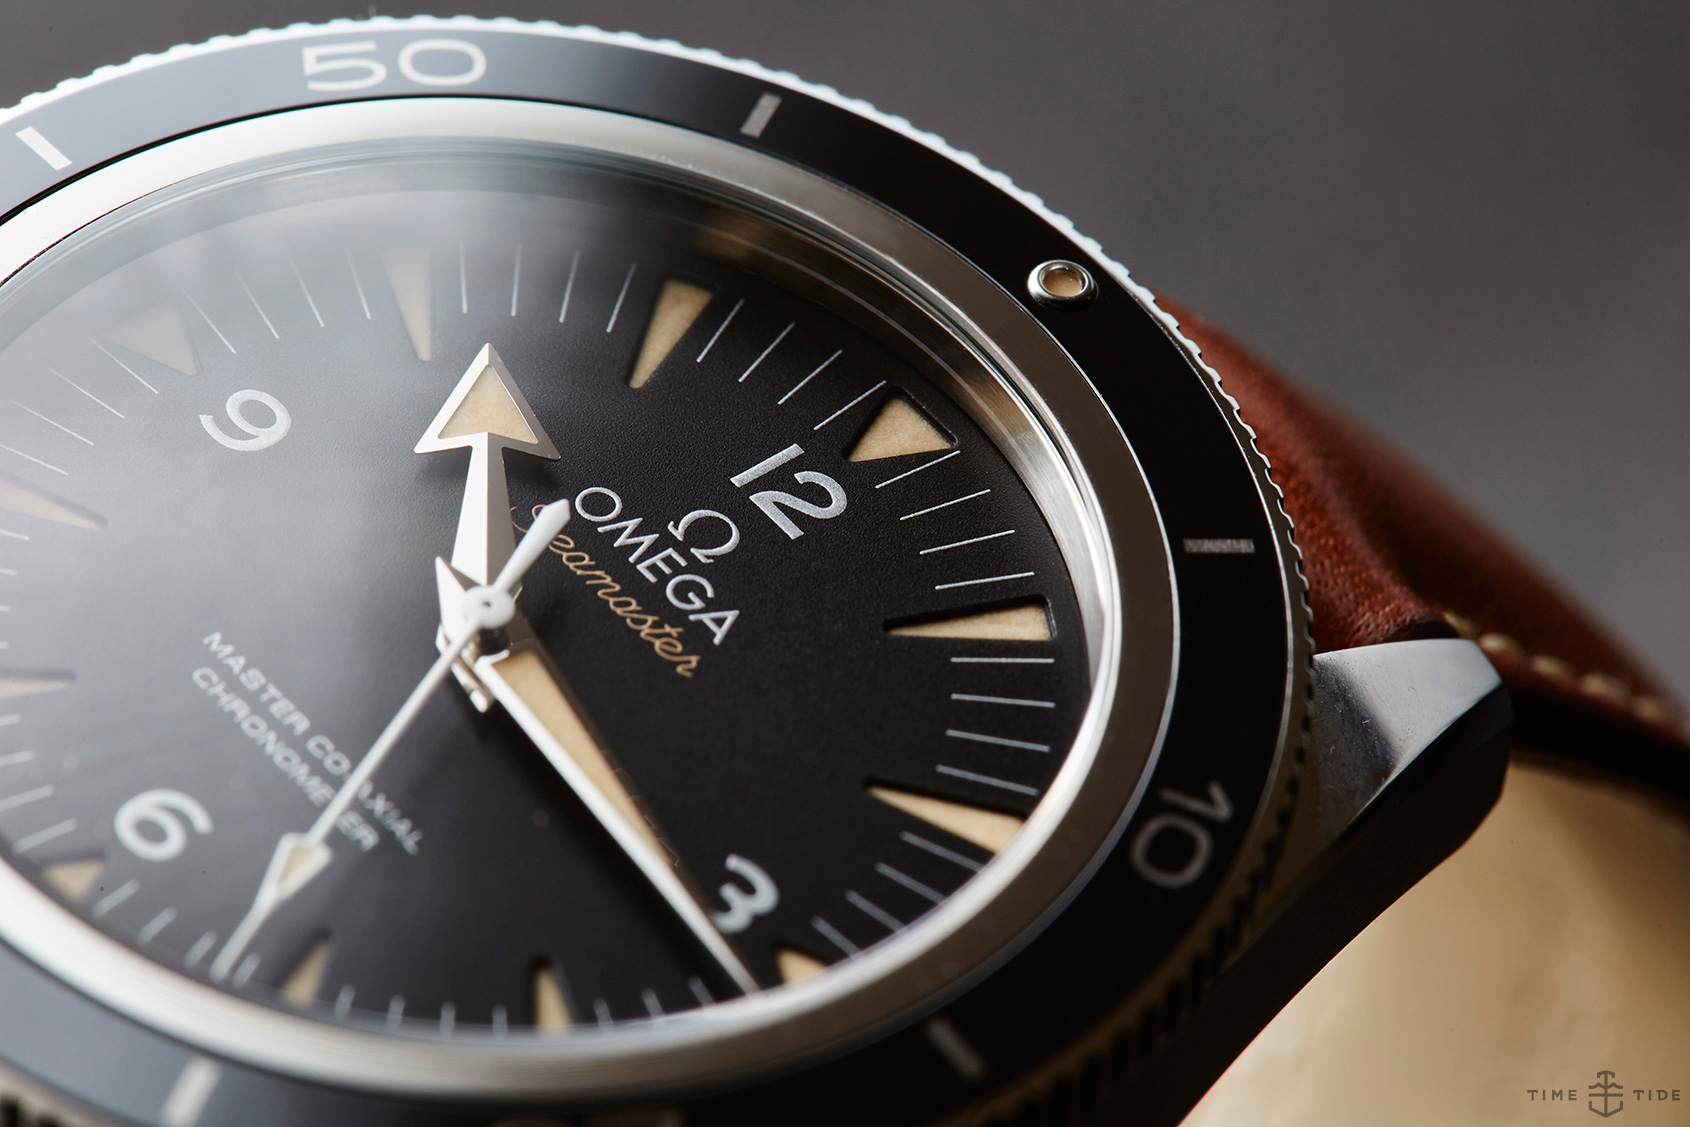 Omega Seamaster 300 Master Co Axial In Depth Review